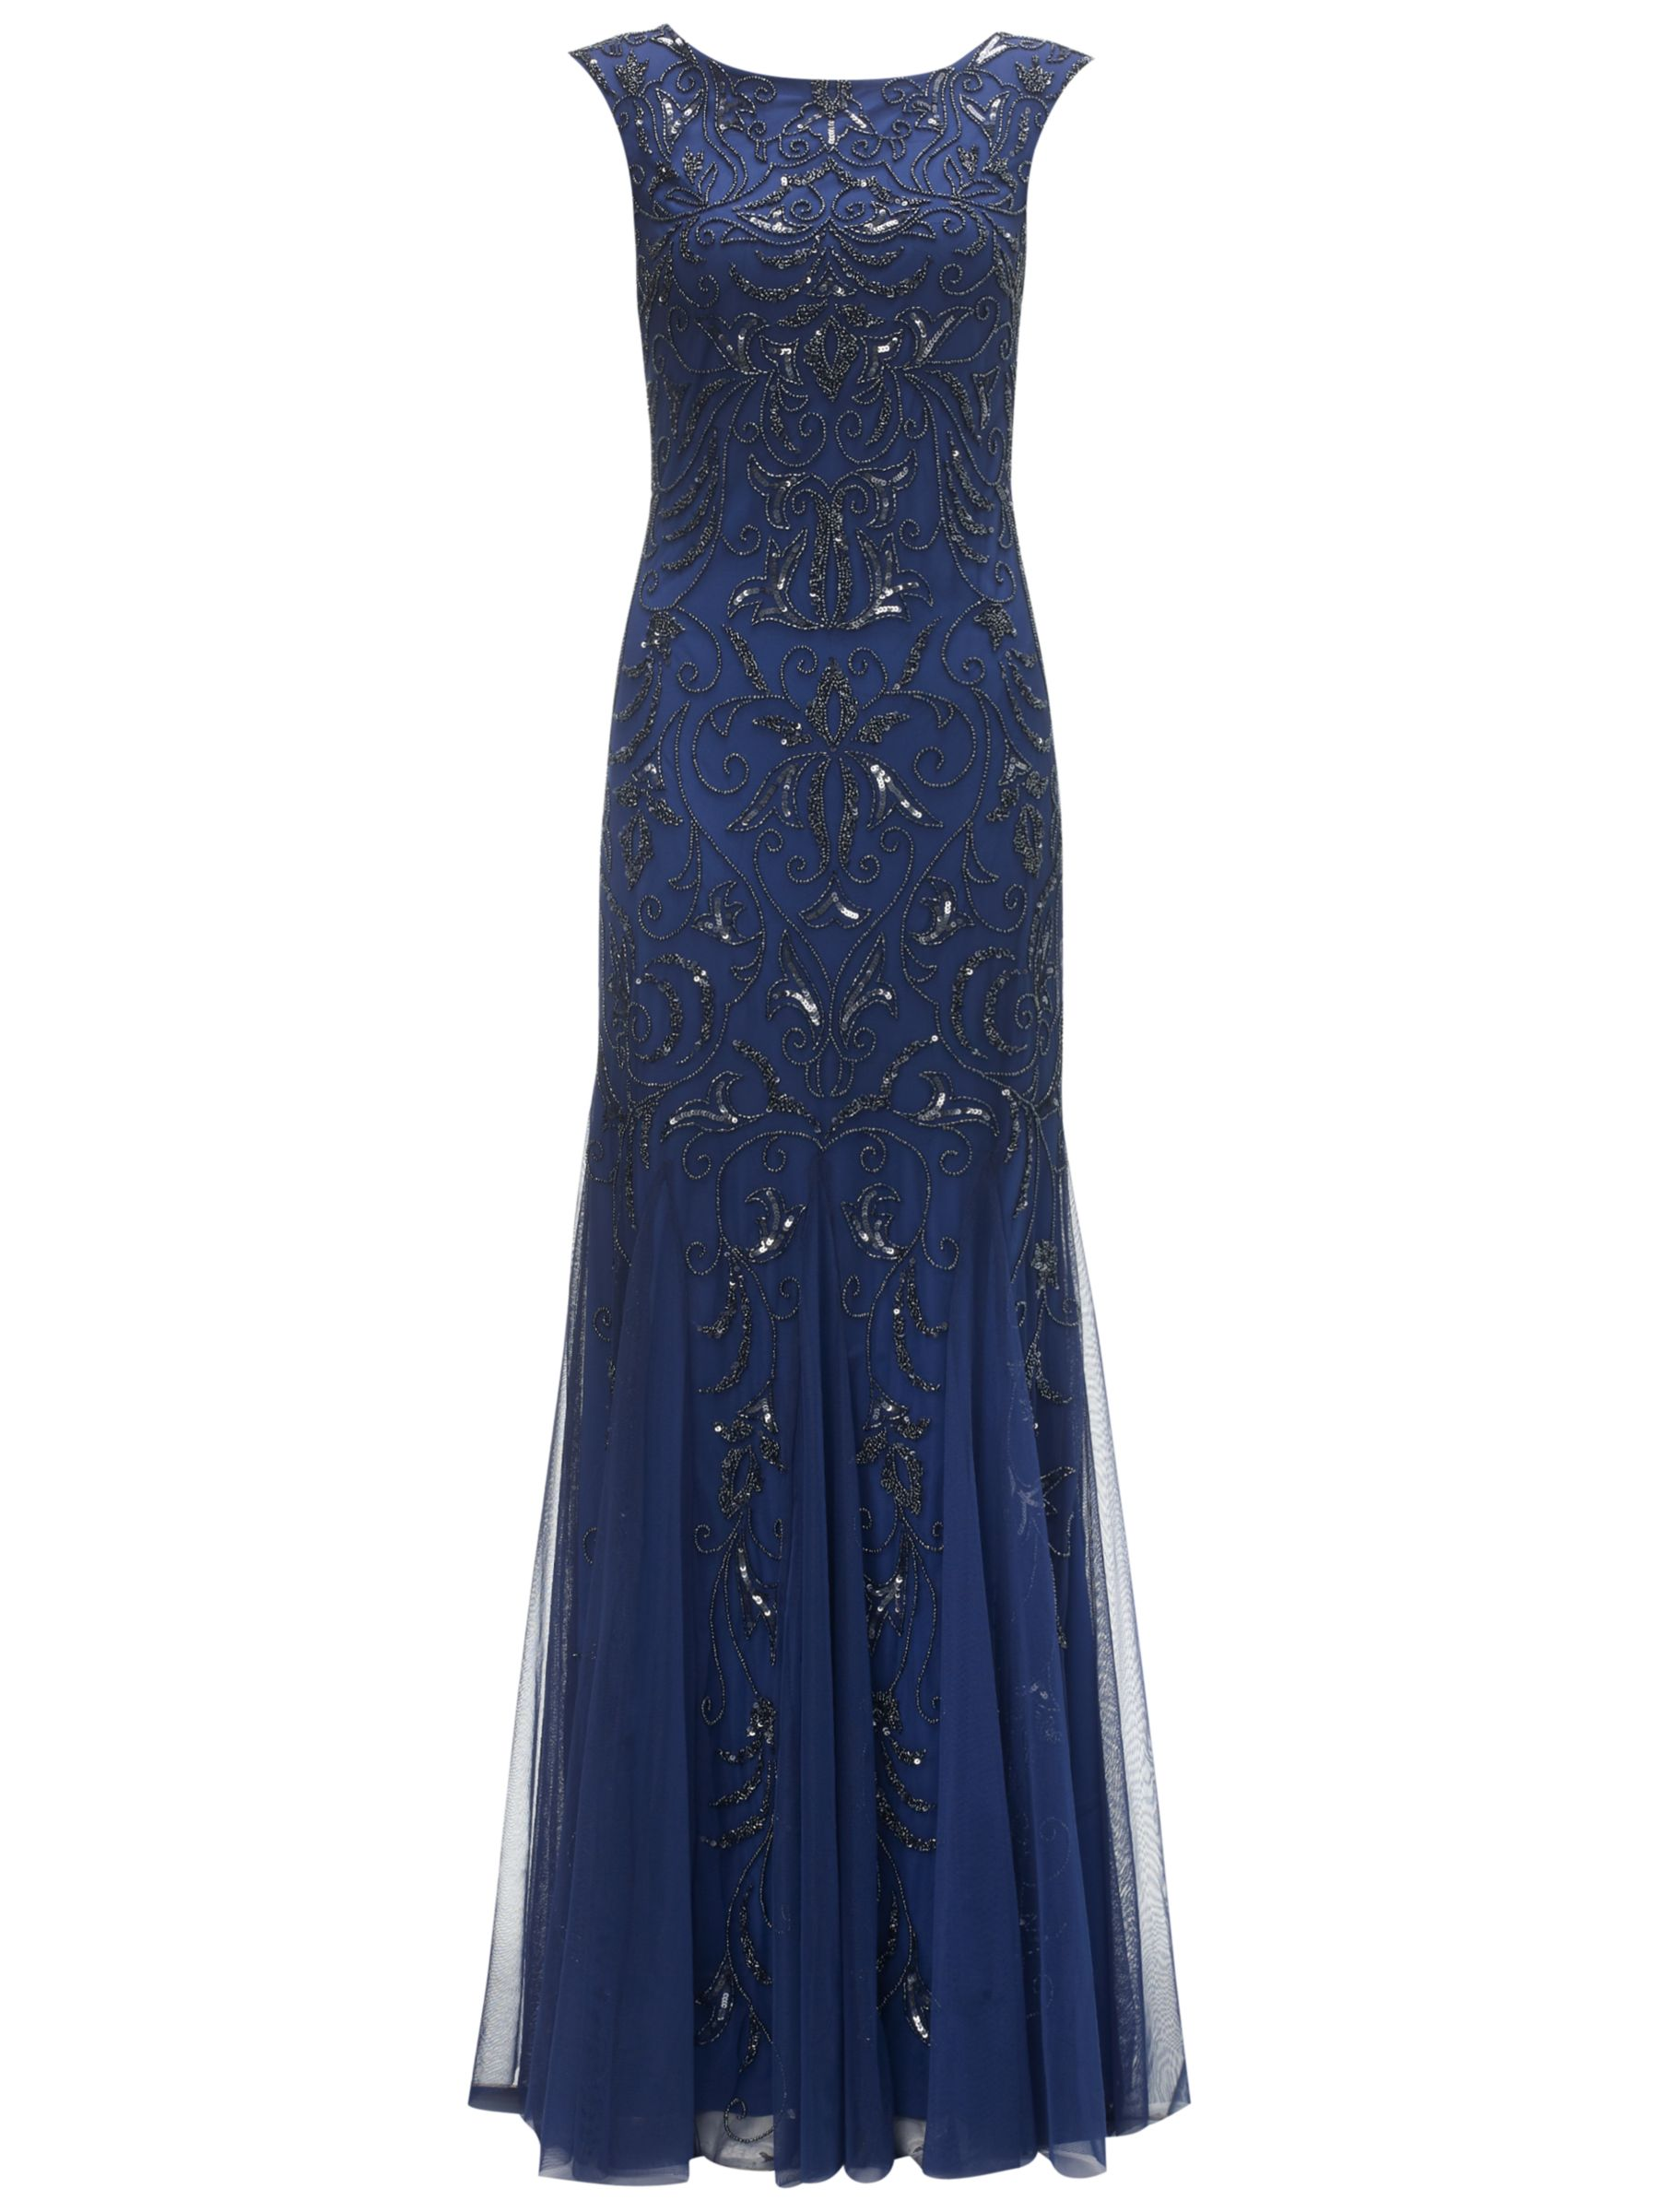 adrianna papell cap sleeve bead dress deep violet, adrianna, papell, cap, sleeve, bead, dress, deep, violet, adrianna papell, 8|16|14|12|10|18, women, plus size, brands a-k, womens dresses, party outfits, evening gowns, 1695383